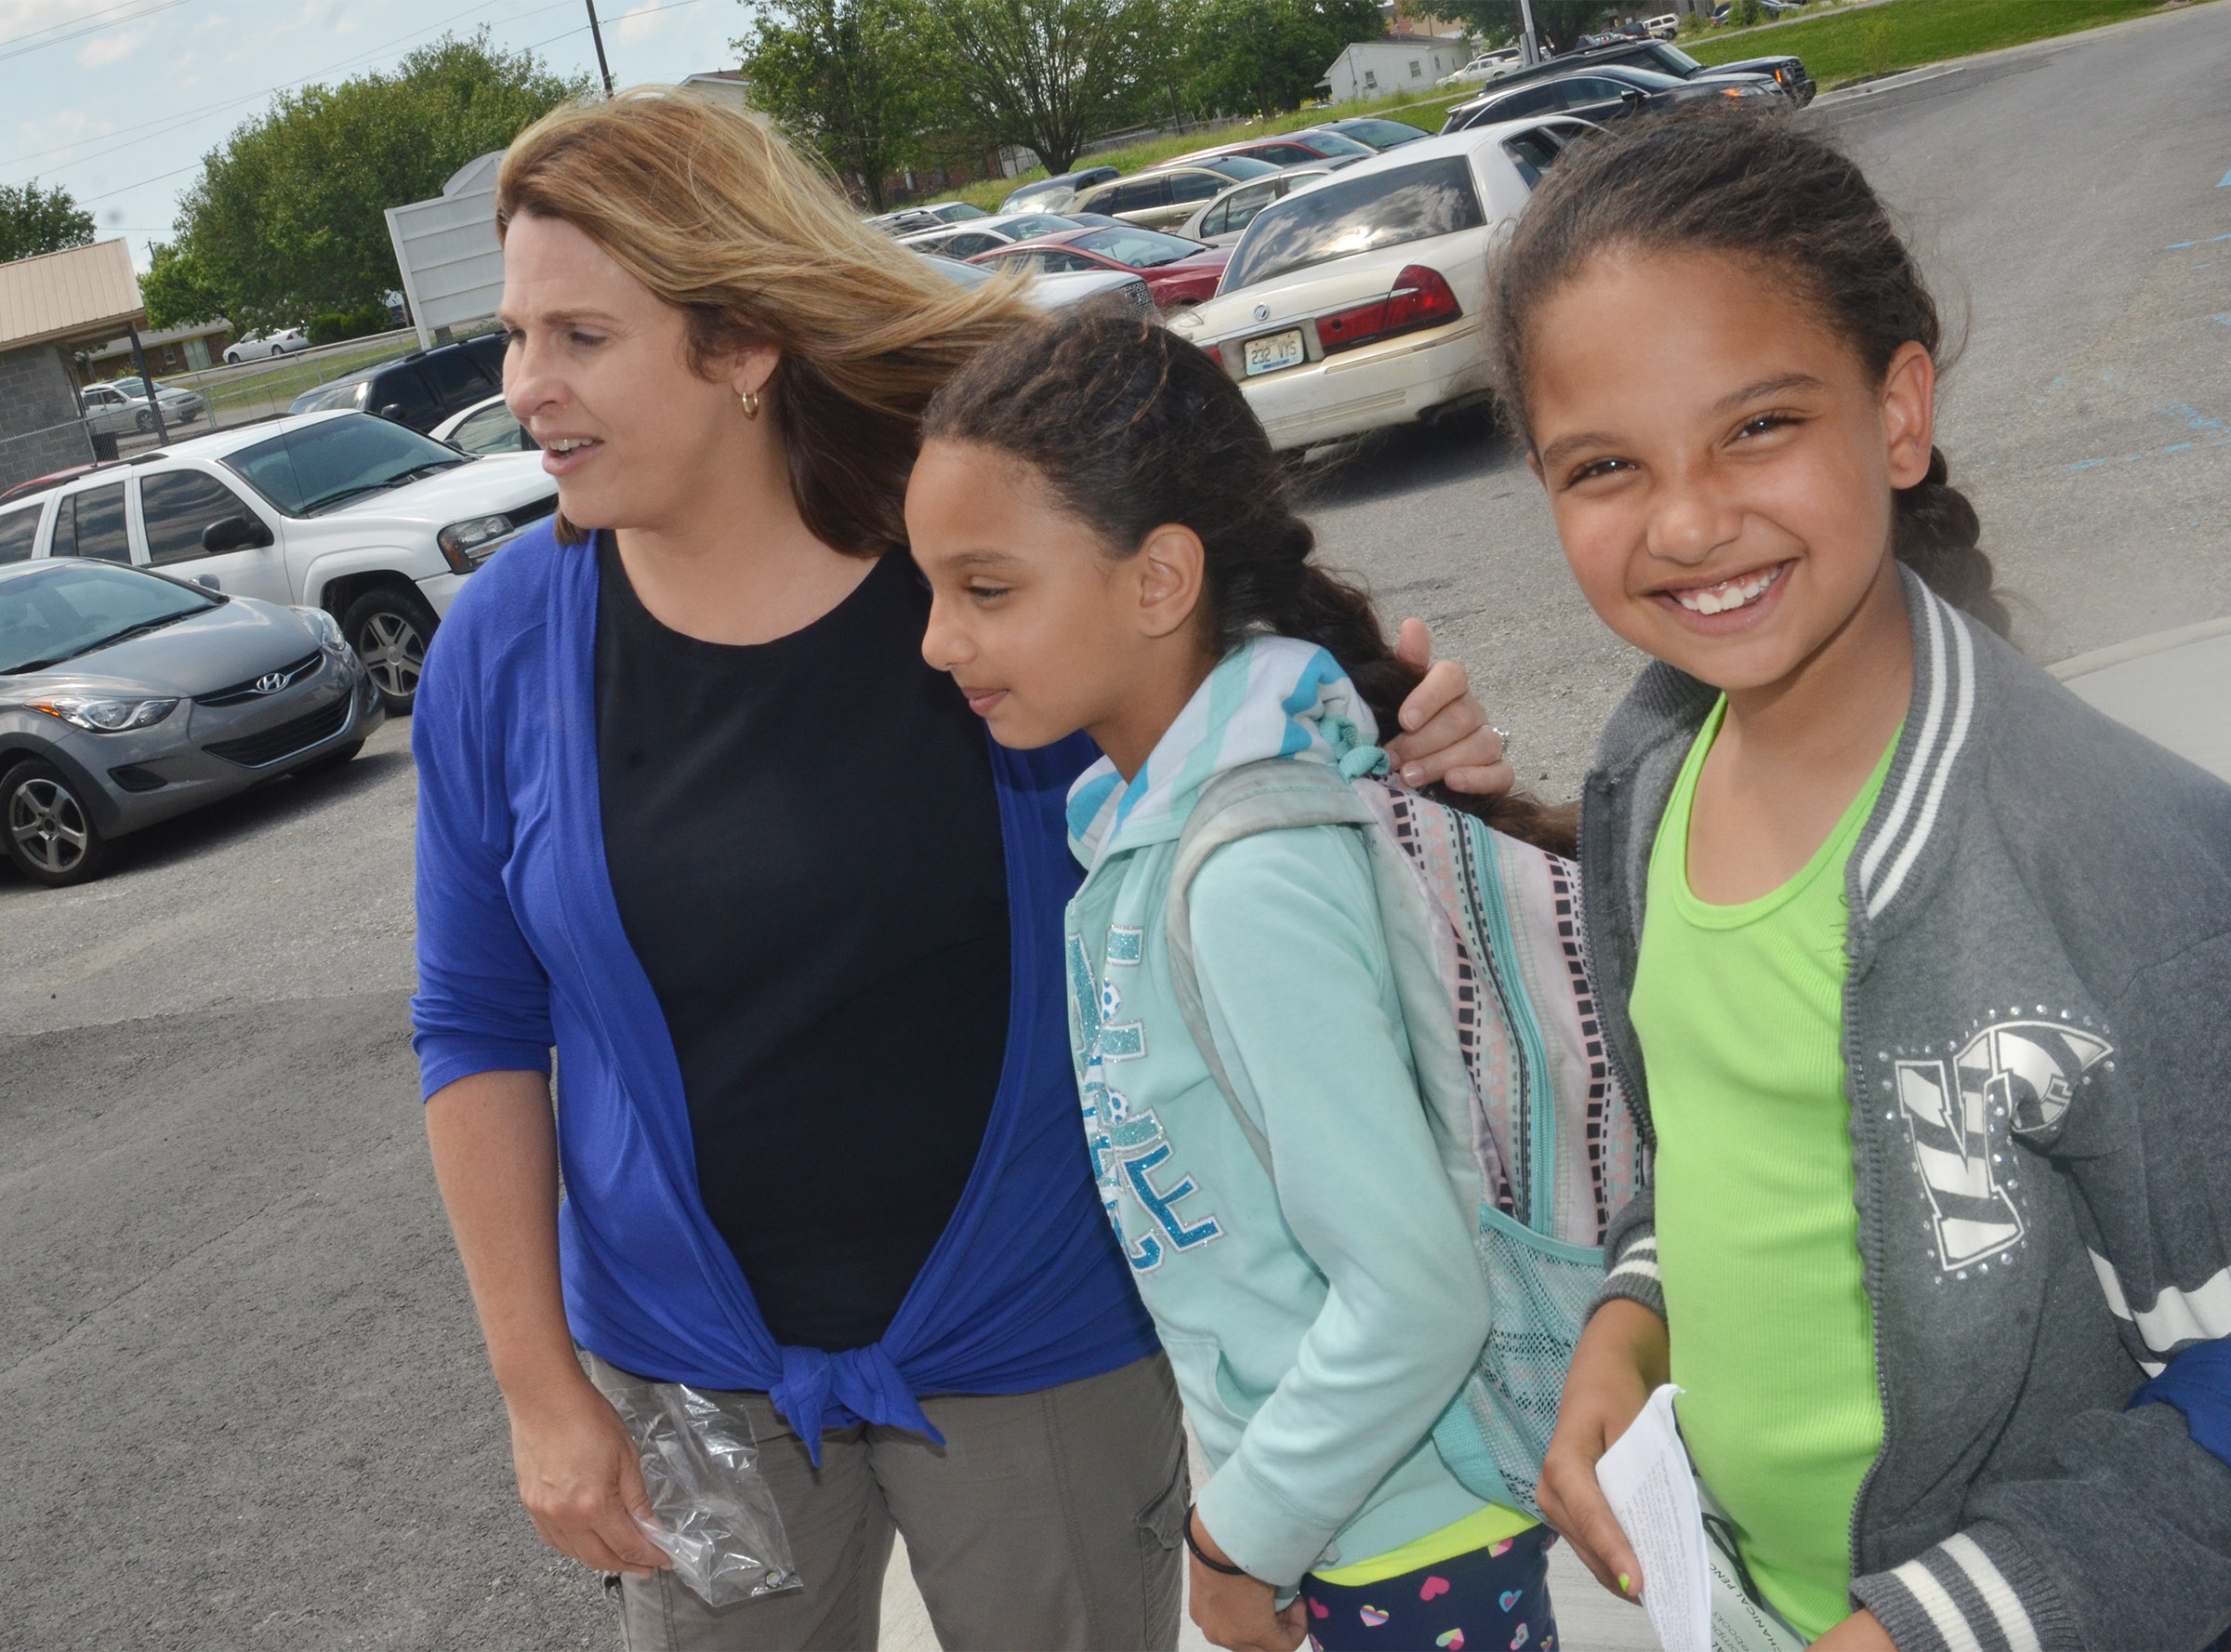 CES Guidance Counselor waits with third-graders Alyssa Knezevic, at left, and her sister Aleecia, as their mother picks them up from school.